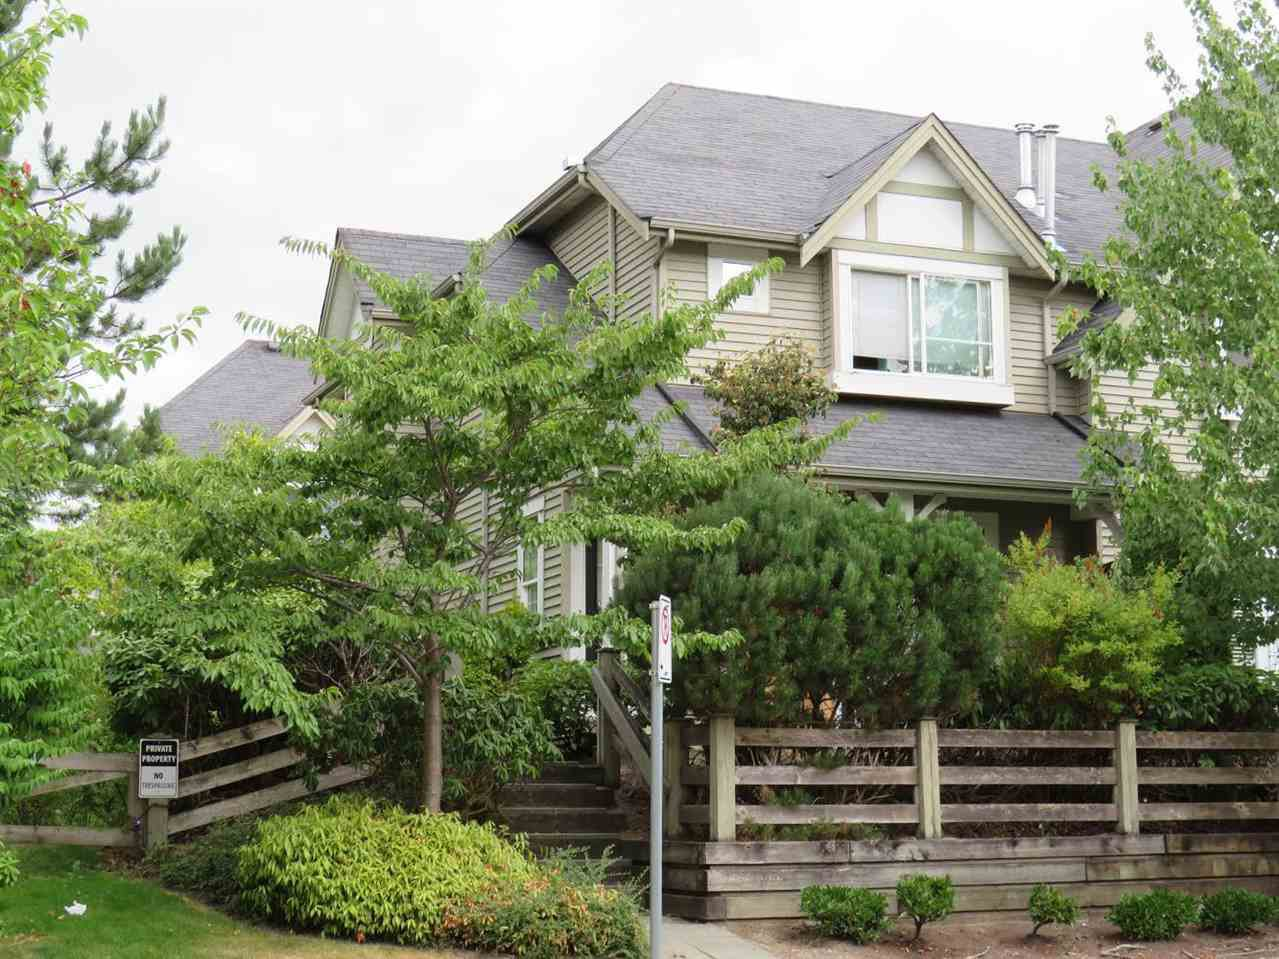 """Main Photo: 44 15488 101A Avenue in Surrey: Guildford Townhouse for sale in """"COBBLEFIELD LANE"""" (North Surrey)  : MLS®# R2300261"""